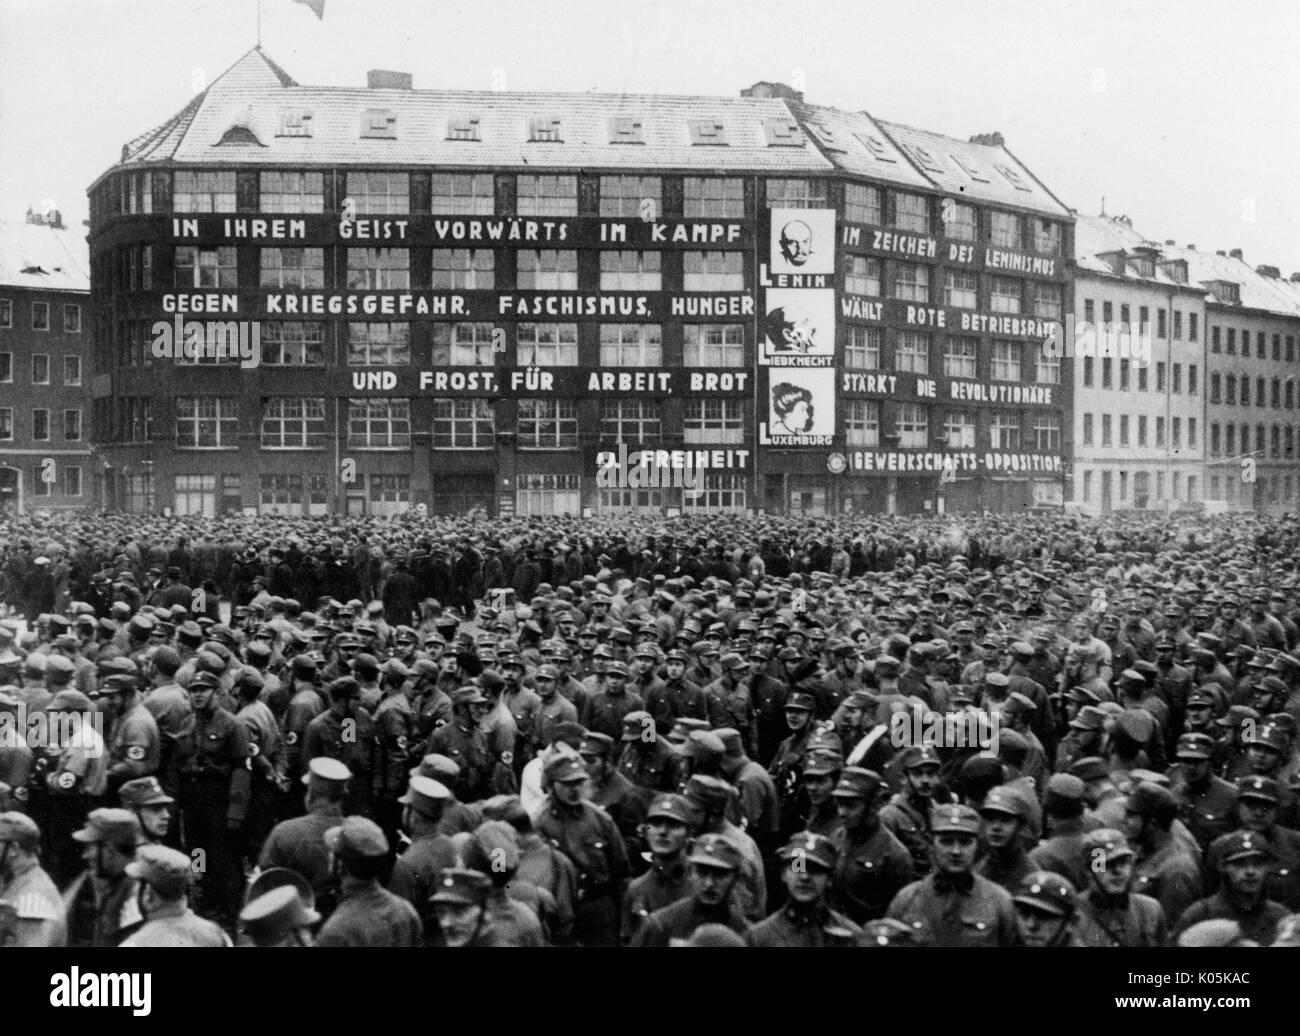 History of the Social Democratic Party of Germany